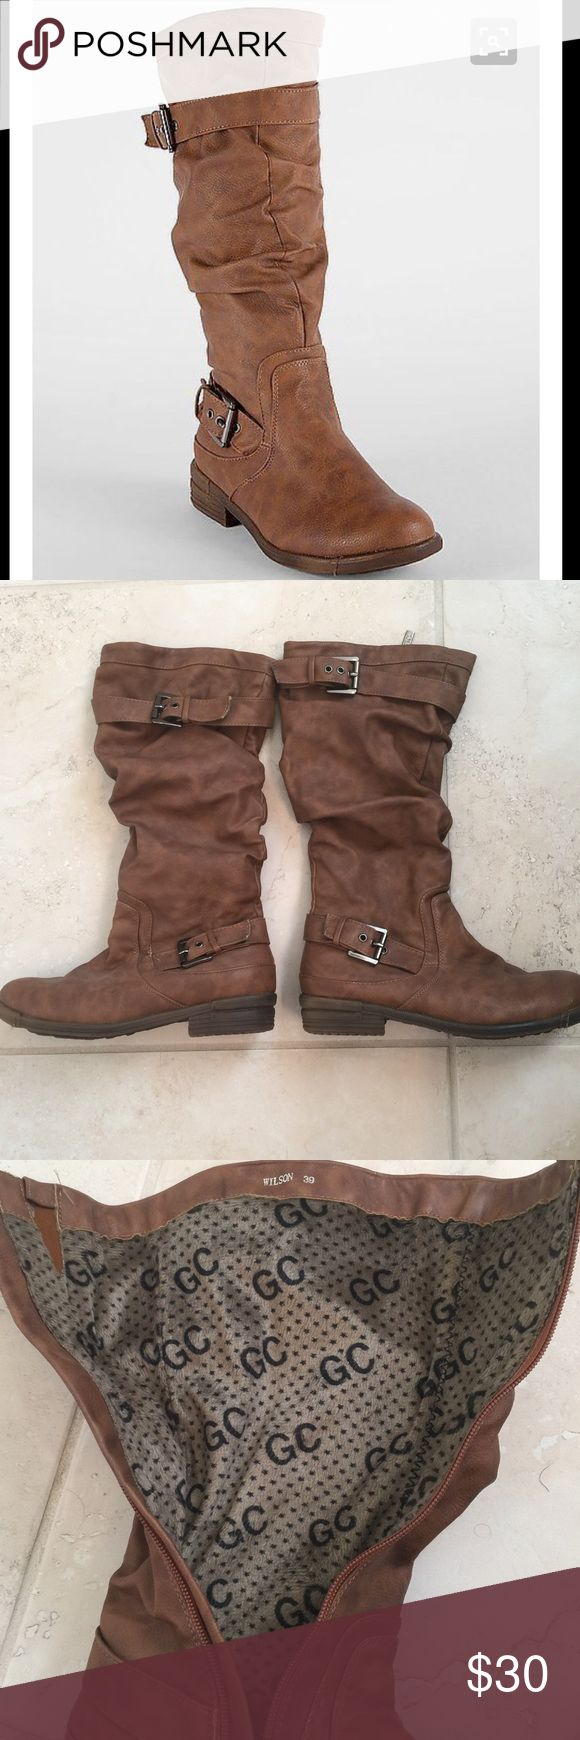 """Buckle Store GC Wilson Boot Buckle faux leather boot. Worn 3-4 times max. Great condition. No stains. Light wear. Bottom soles still in great condition. Faux fur inside lining, extremely comfortable. Tall 14 1/2"""" shaft. 1"""" heel. Textile upper, man made sole. Look cute paired with skinny jeans or leggings. Calf is form fitting. European size 39, US size 8.5 according to Buckle shoe size guide. Purchased at Buckle stores. GC (Buckle)  Shoes Heeled Boots"""